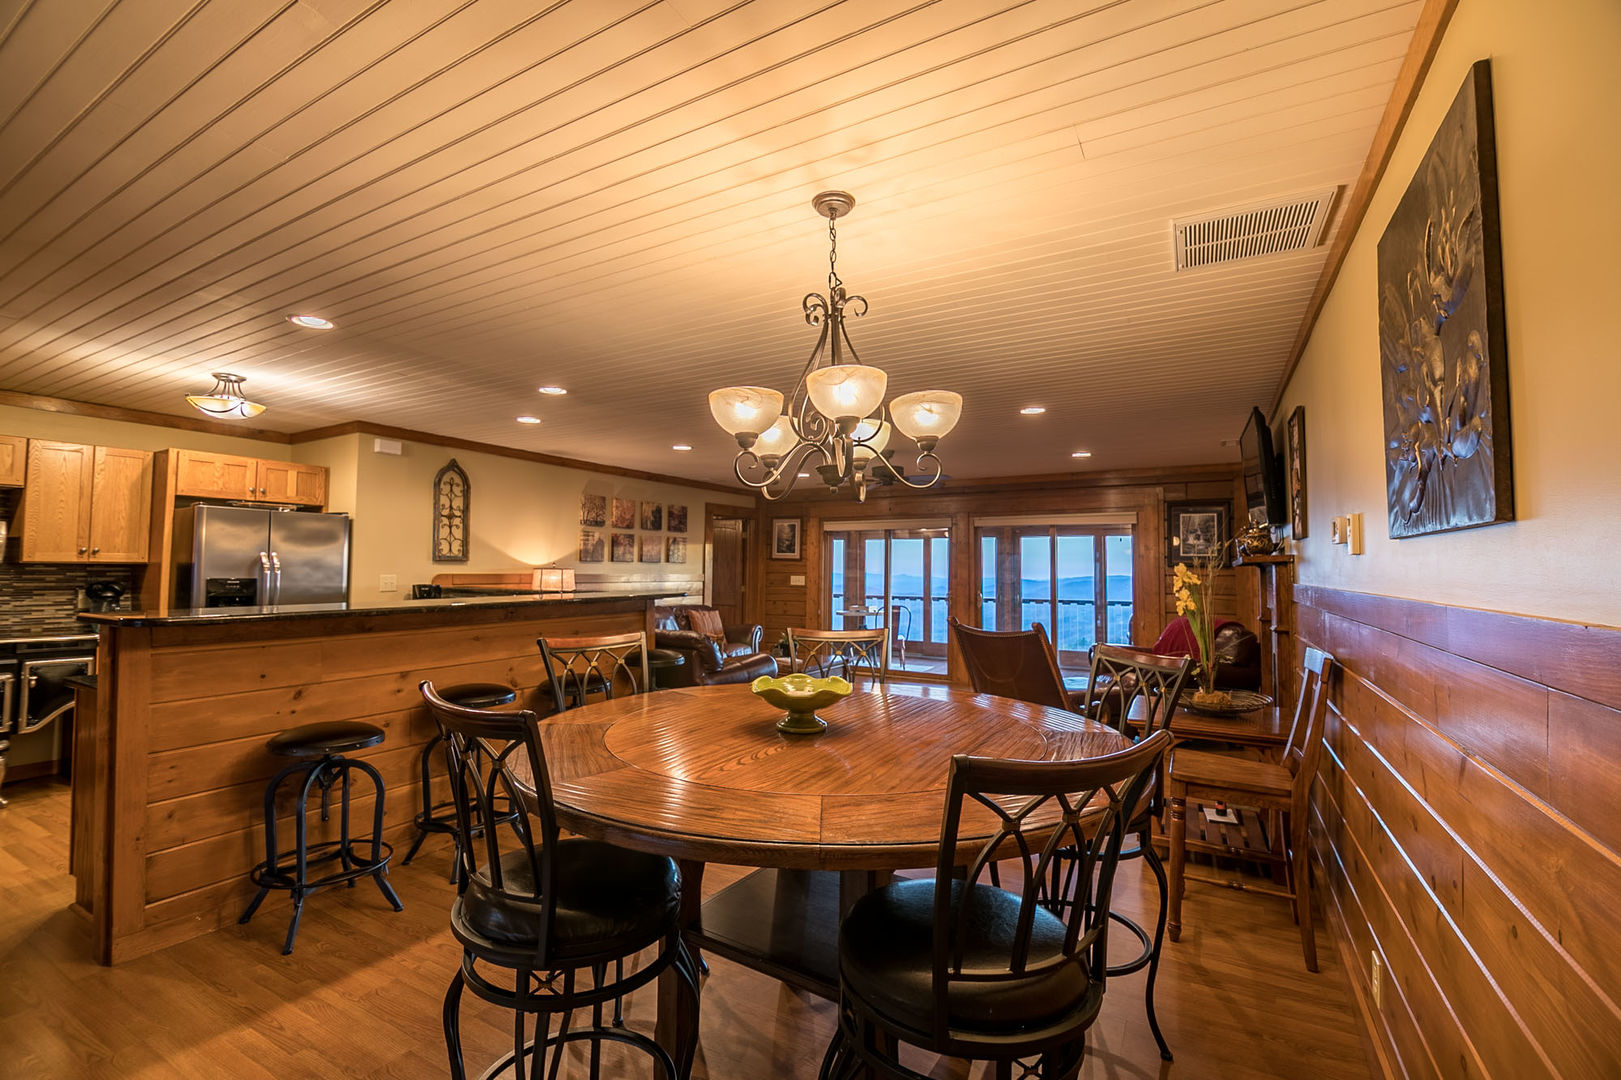 Dining area with up to 6 place settings